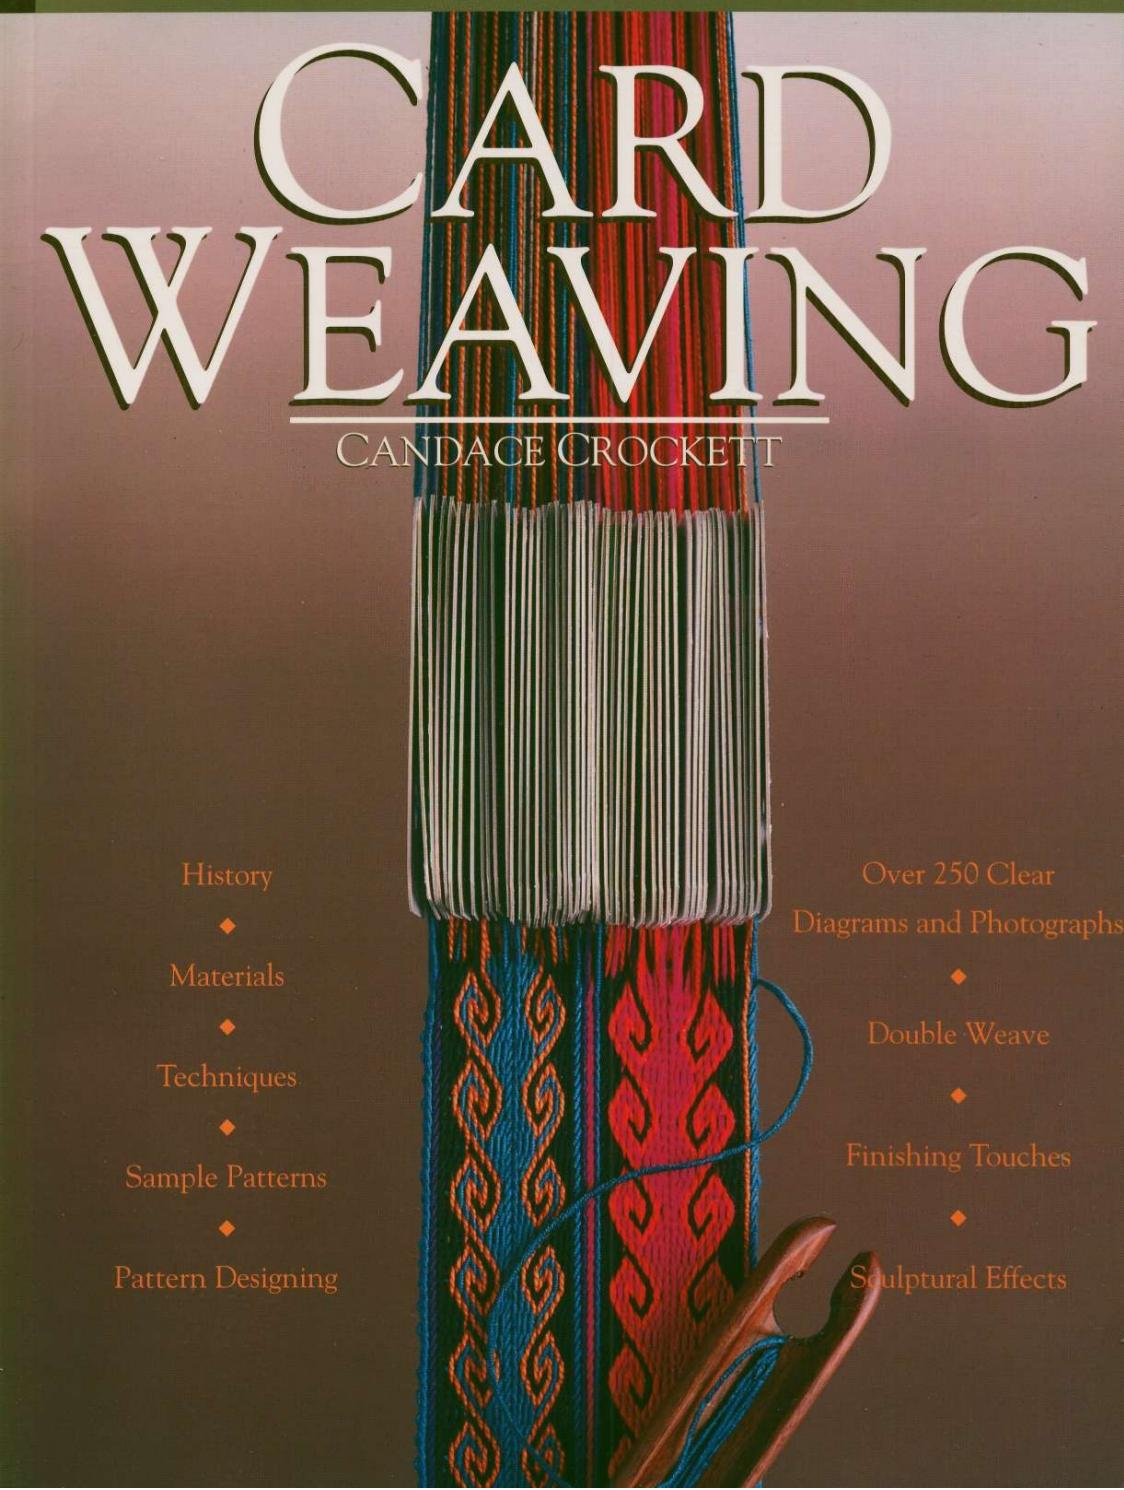 4 Piece Set Weaving Netting Needle or Shuttle for Various Weaving Looms etc.